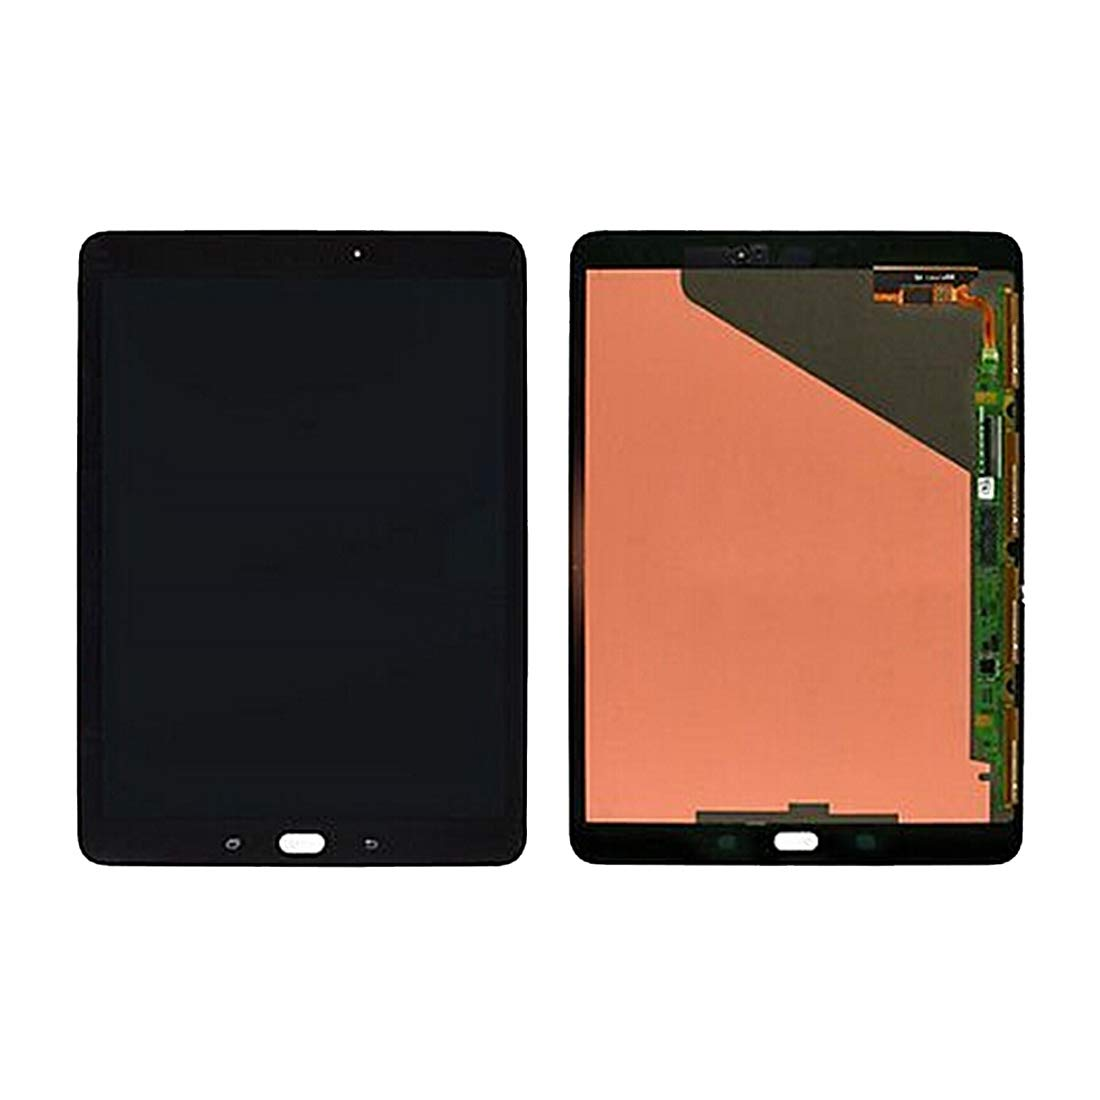 HONGYU Smartphone Spare Parts for Galaxy Tab S2 9.7 / T815 / T810 LCD Screen and Digitizer Full Assembly(Black) Repair Parts (Color : Black)